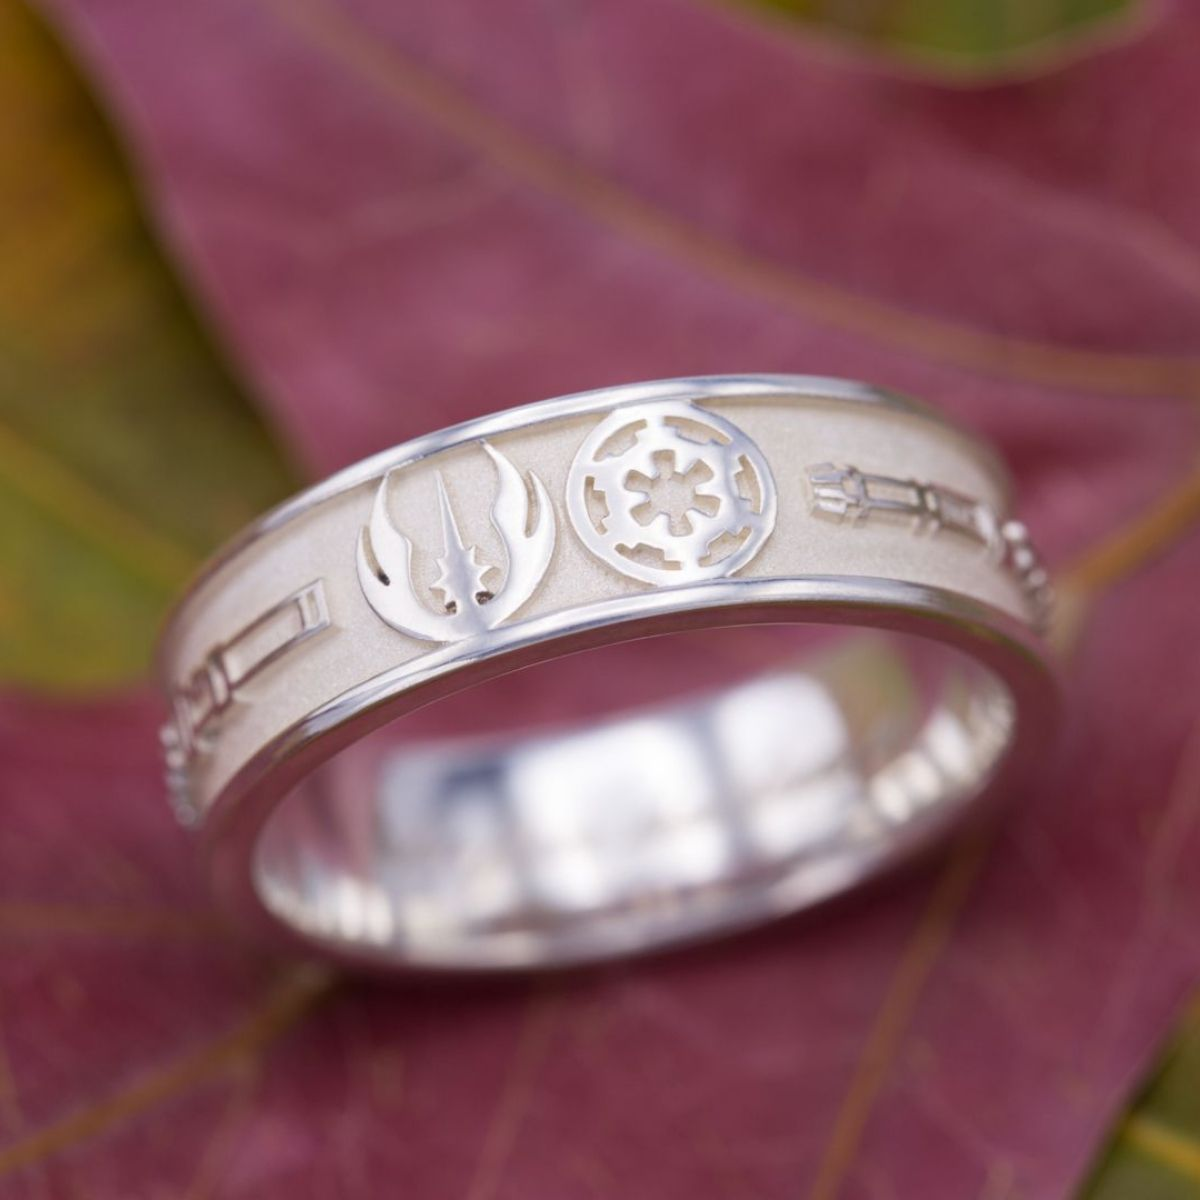 A Star Wars Wedding Band Features Balance Of Light And Dark With The Symbols For Galactic Republic Empire Flanked By